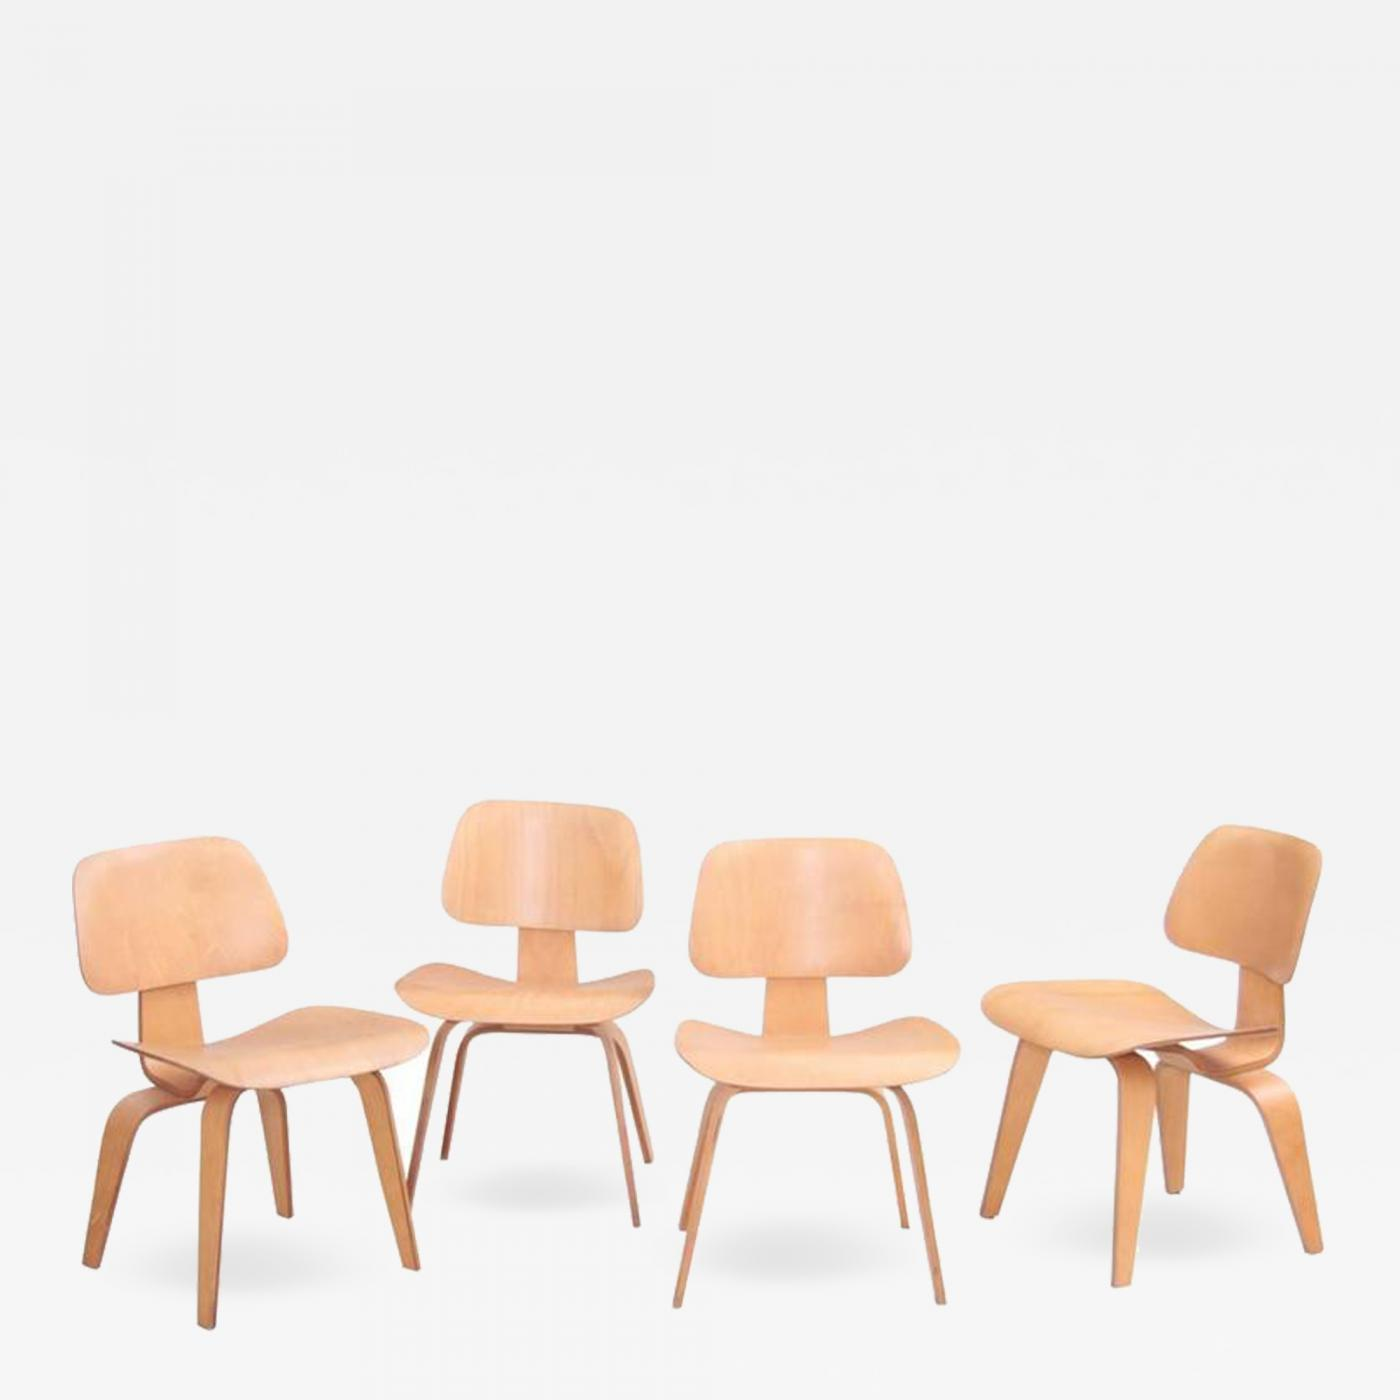 Prime Charles Ray Eames Set Of Four Matched Early Dcw Dining Chairs By Charles And Ray Eames For Evans Pdpeps Interior Chair Design Pdpepsorg